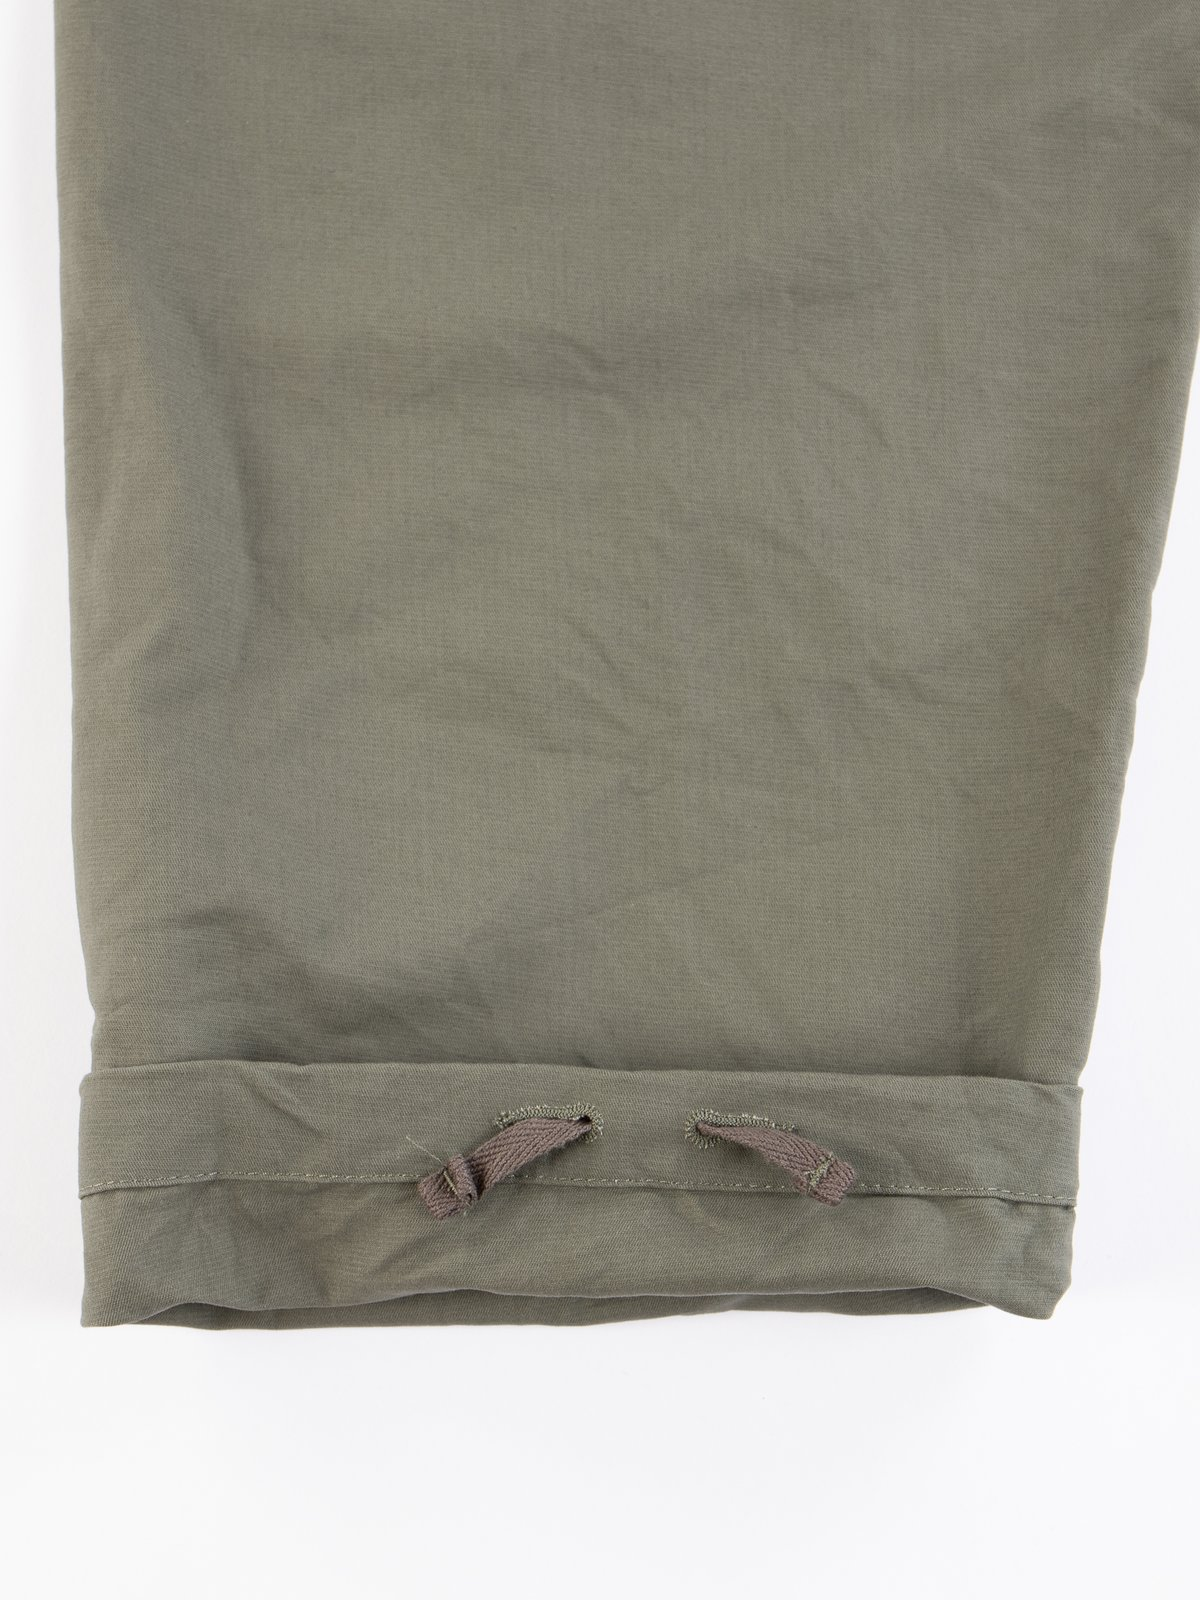 Olive Cotton Double Cloth Overalls - Image 7